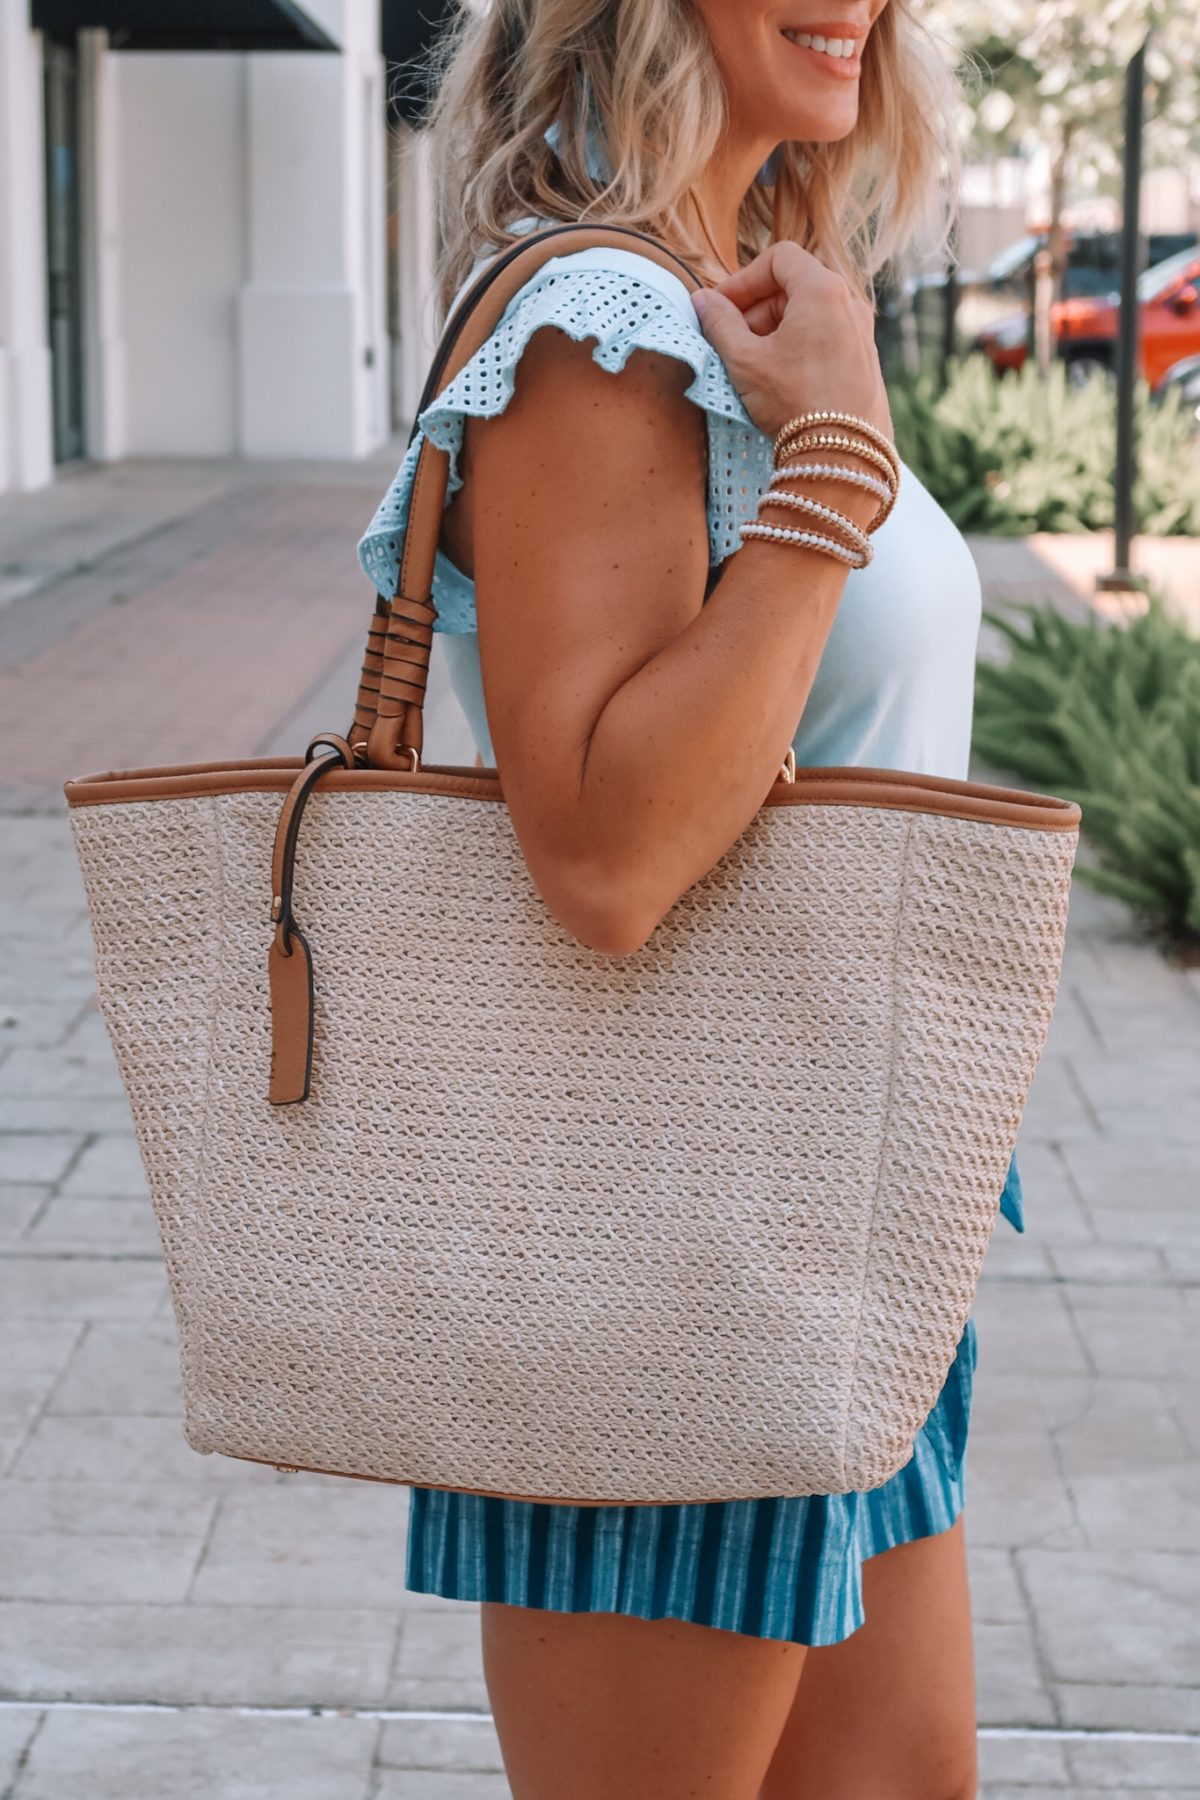 Eyelet Sleeve Top, Blue Stripe Tie Waist Shorts, Sole Society Woven Tote Bag, Sandals